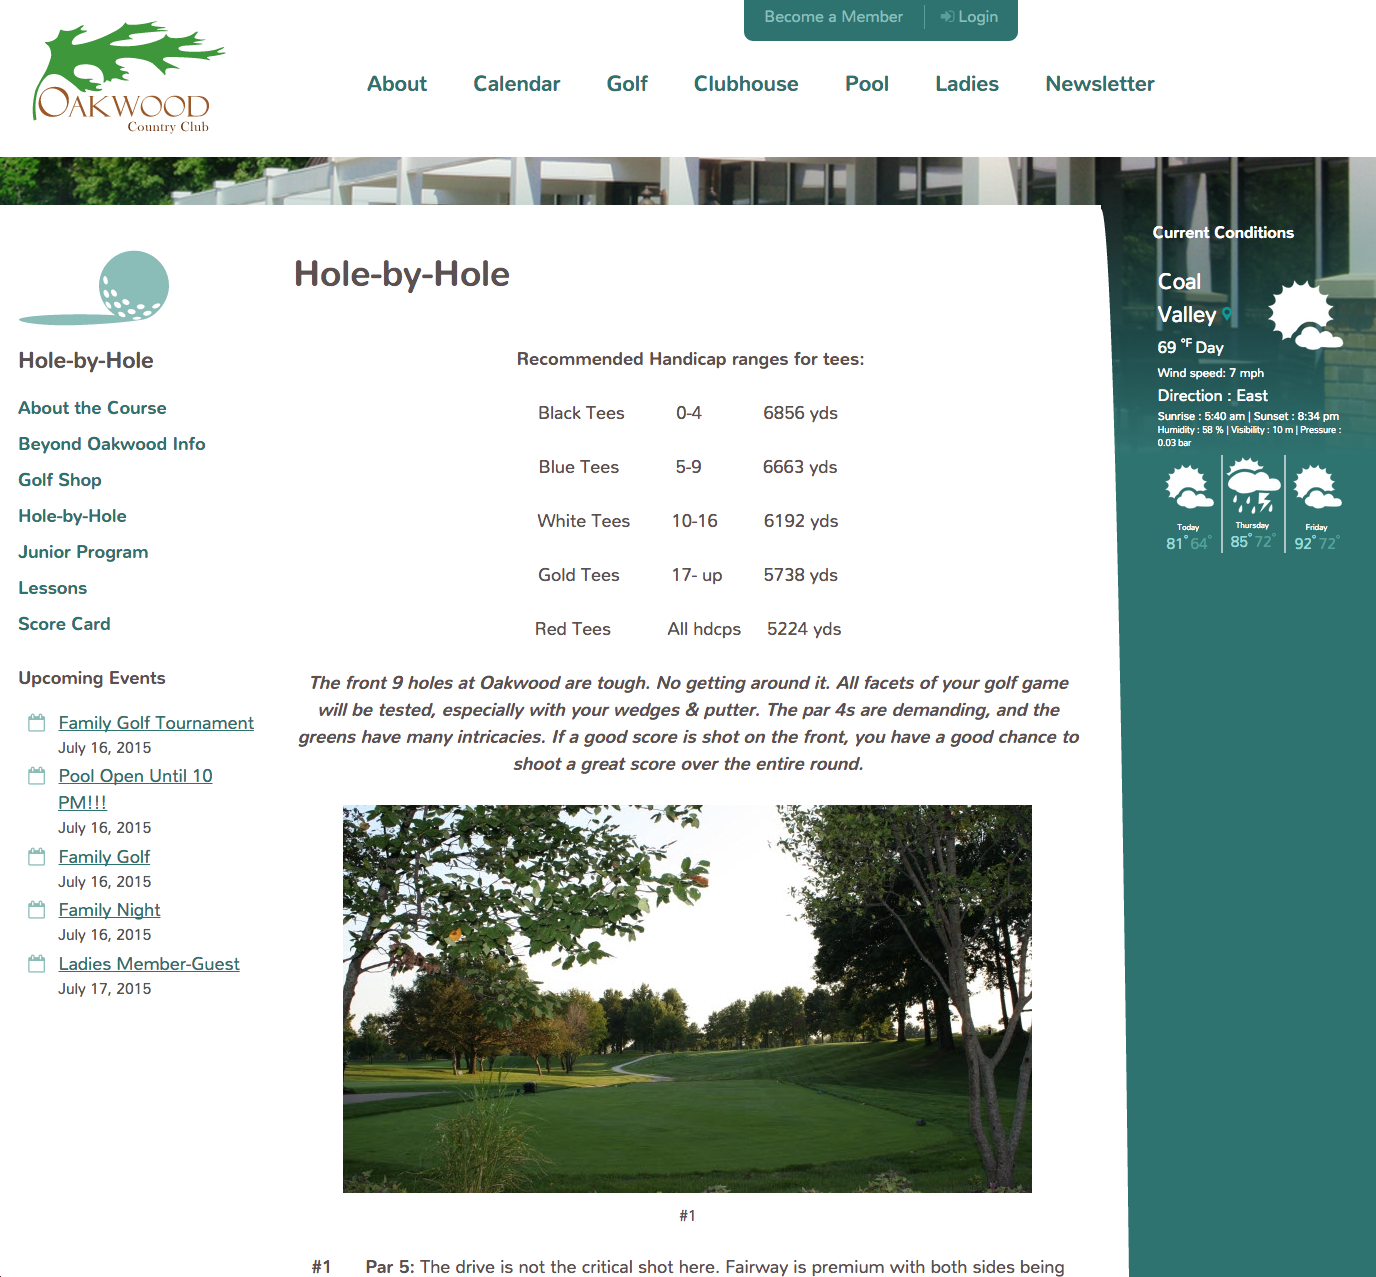 Oakwood Country Club Golf Hole-by-Hole page